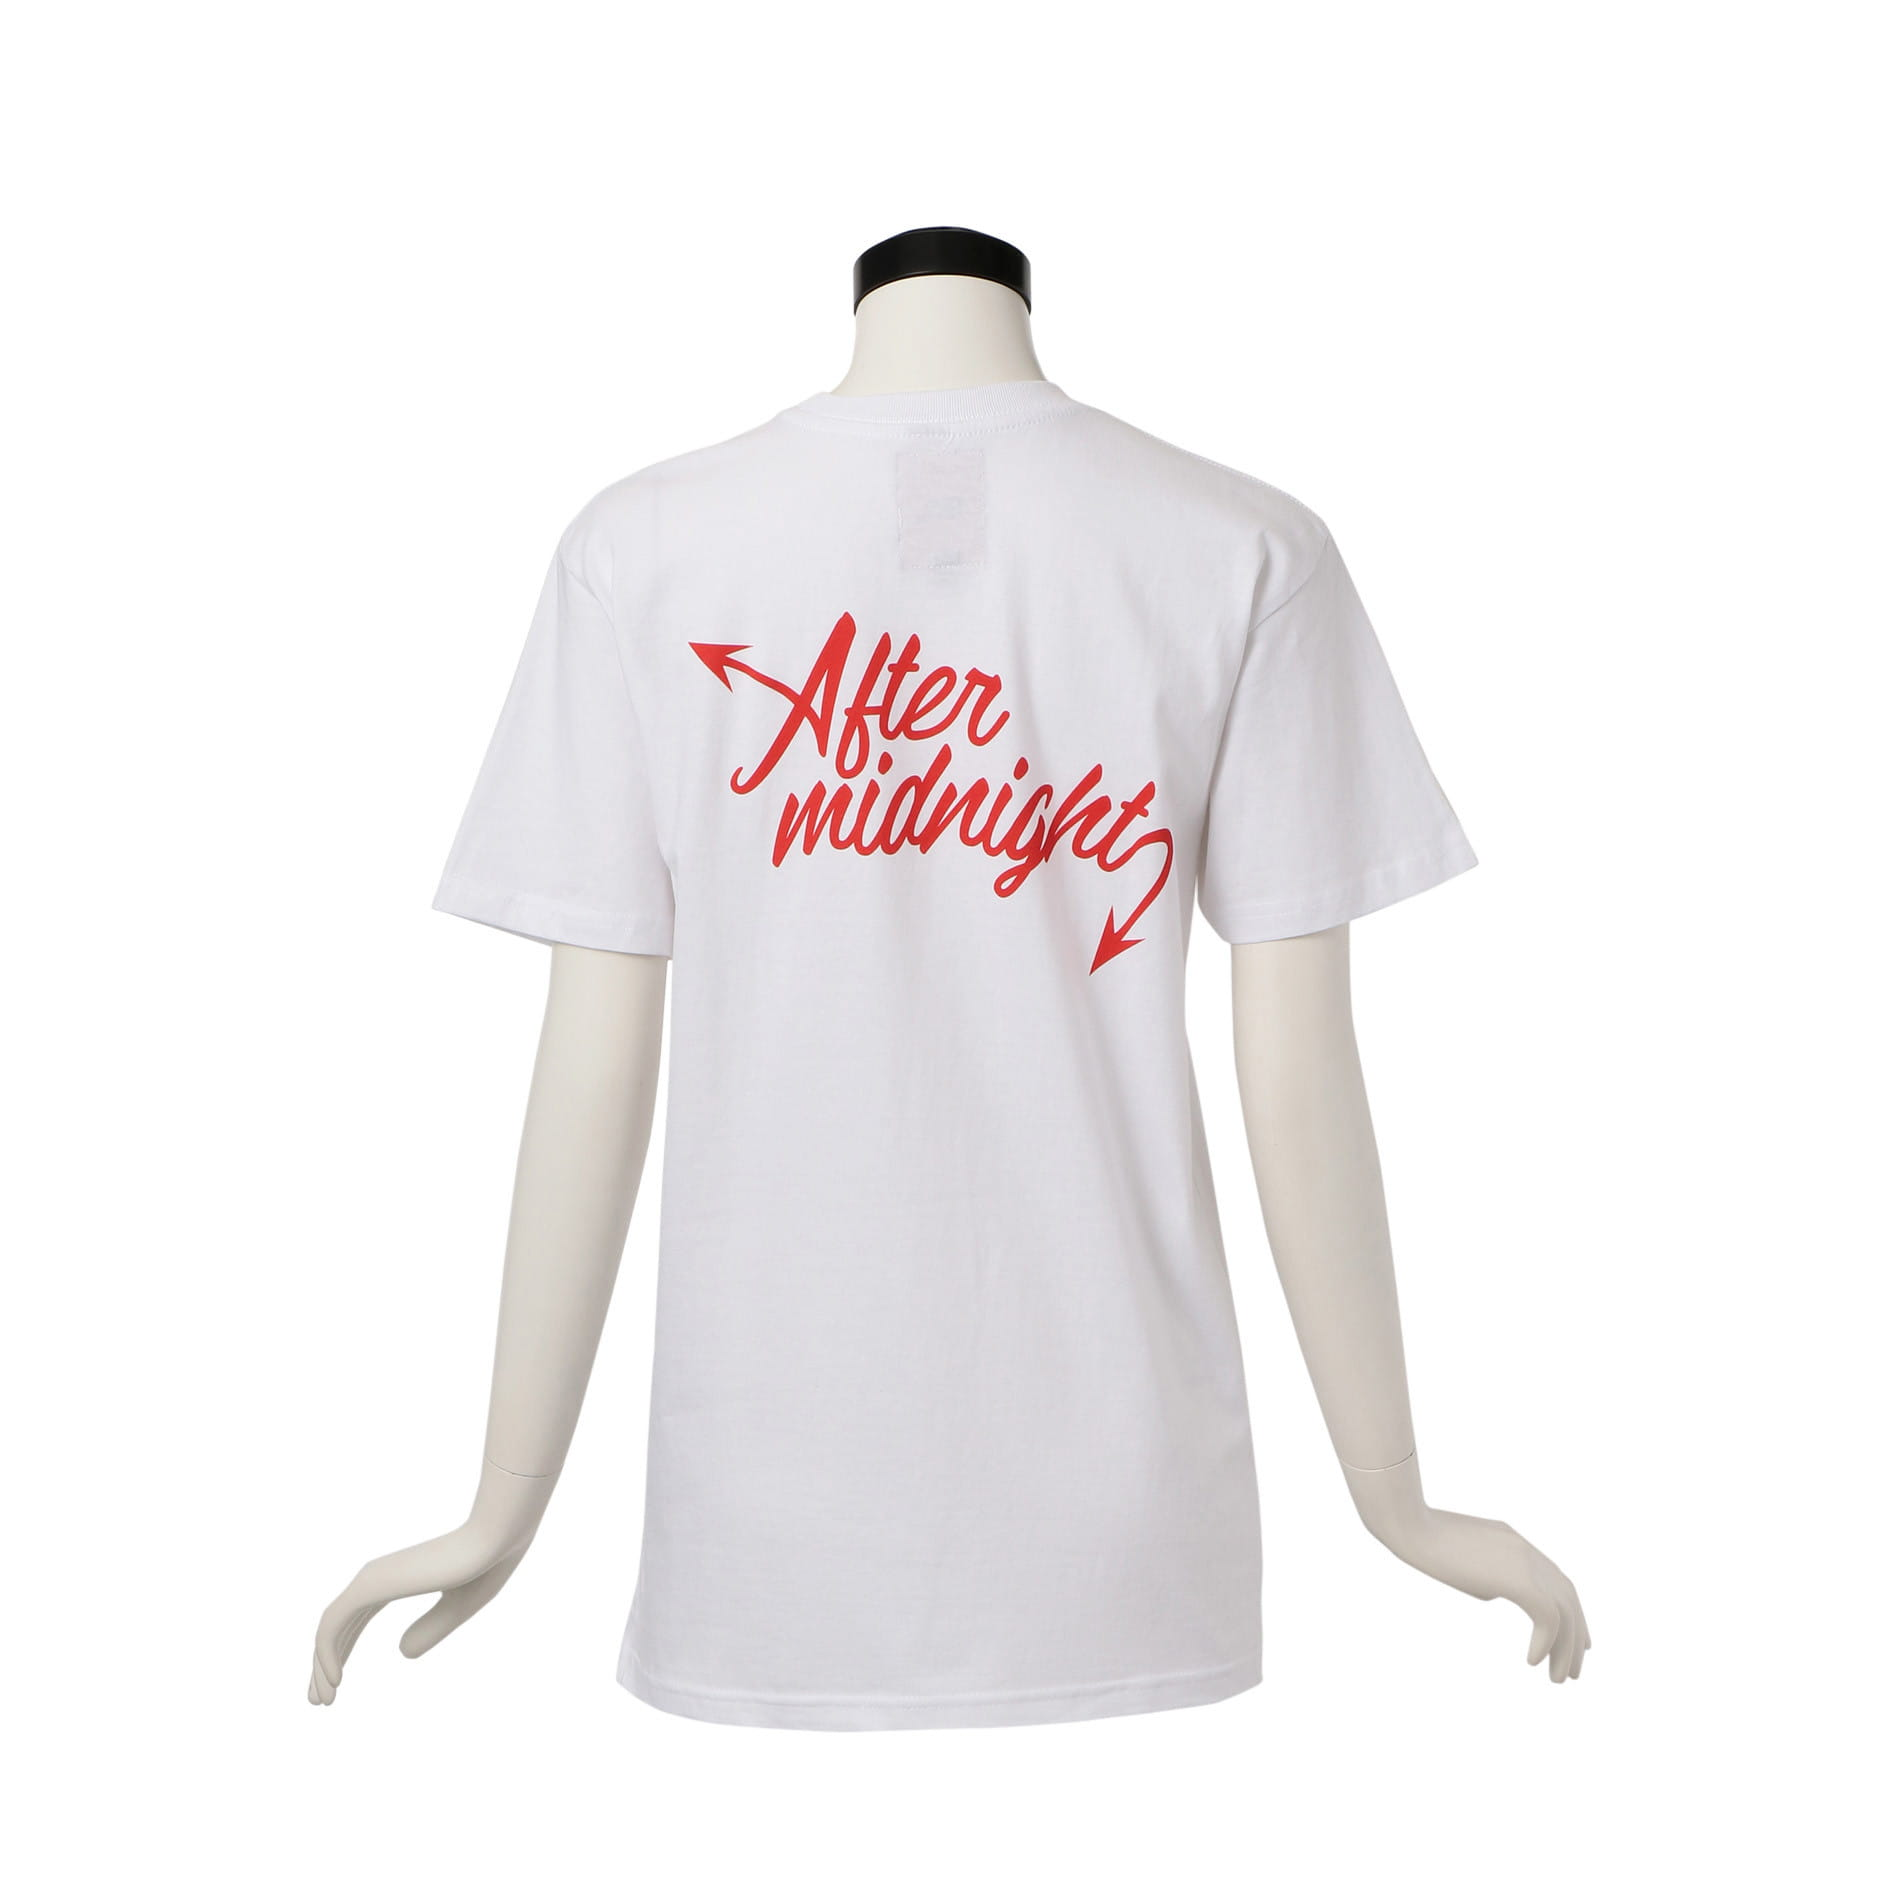 【am(After Midnight)】WOMEN Tシャツ SS19-TS011